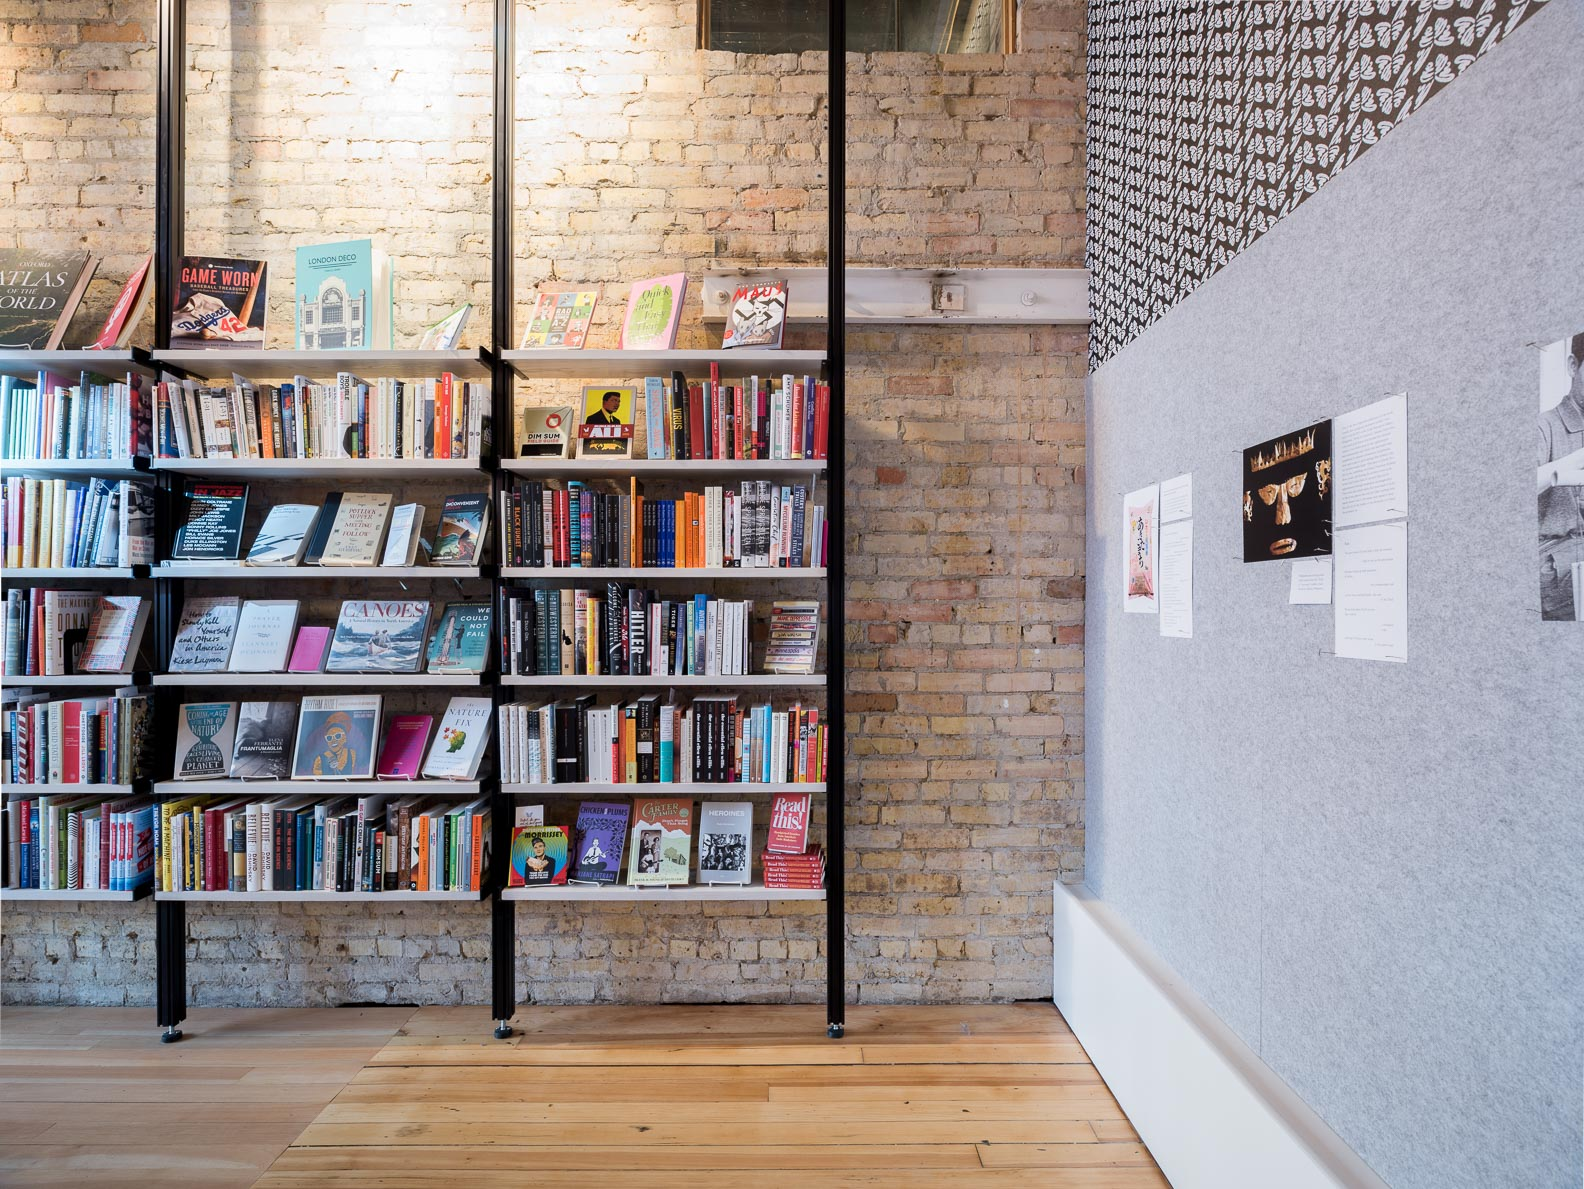 modern open steel and wood bookshelves against aged brick wall